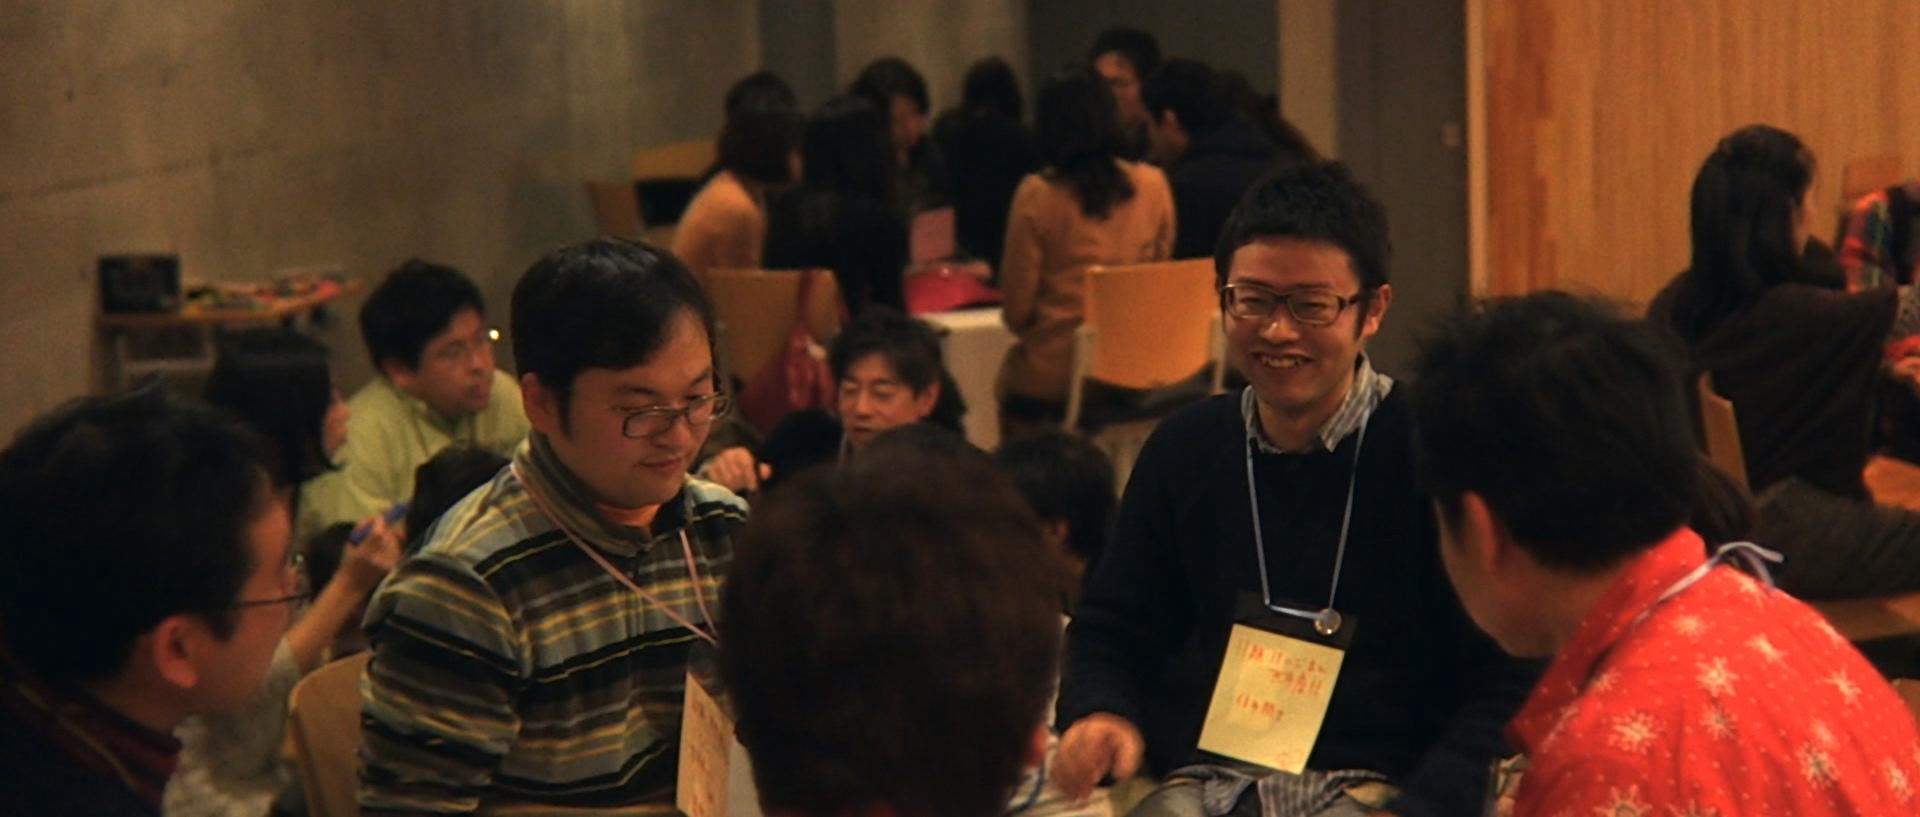 WSD同窓会!Home Coming Partyに参加しました!_a0197628_1981118.jpg